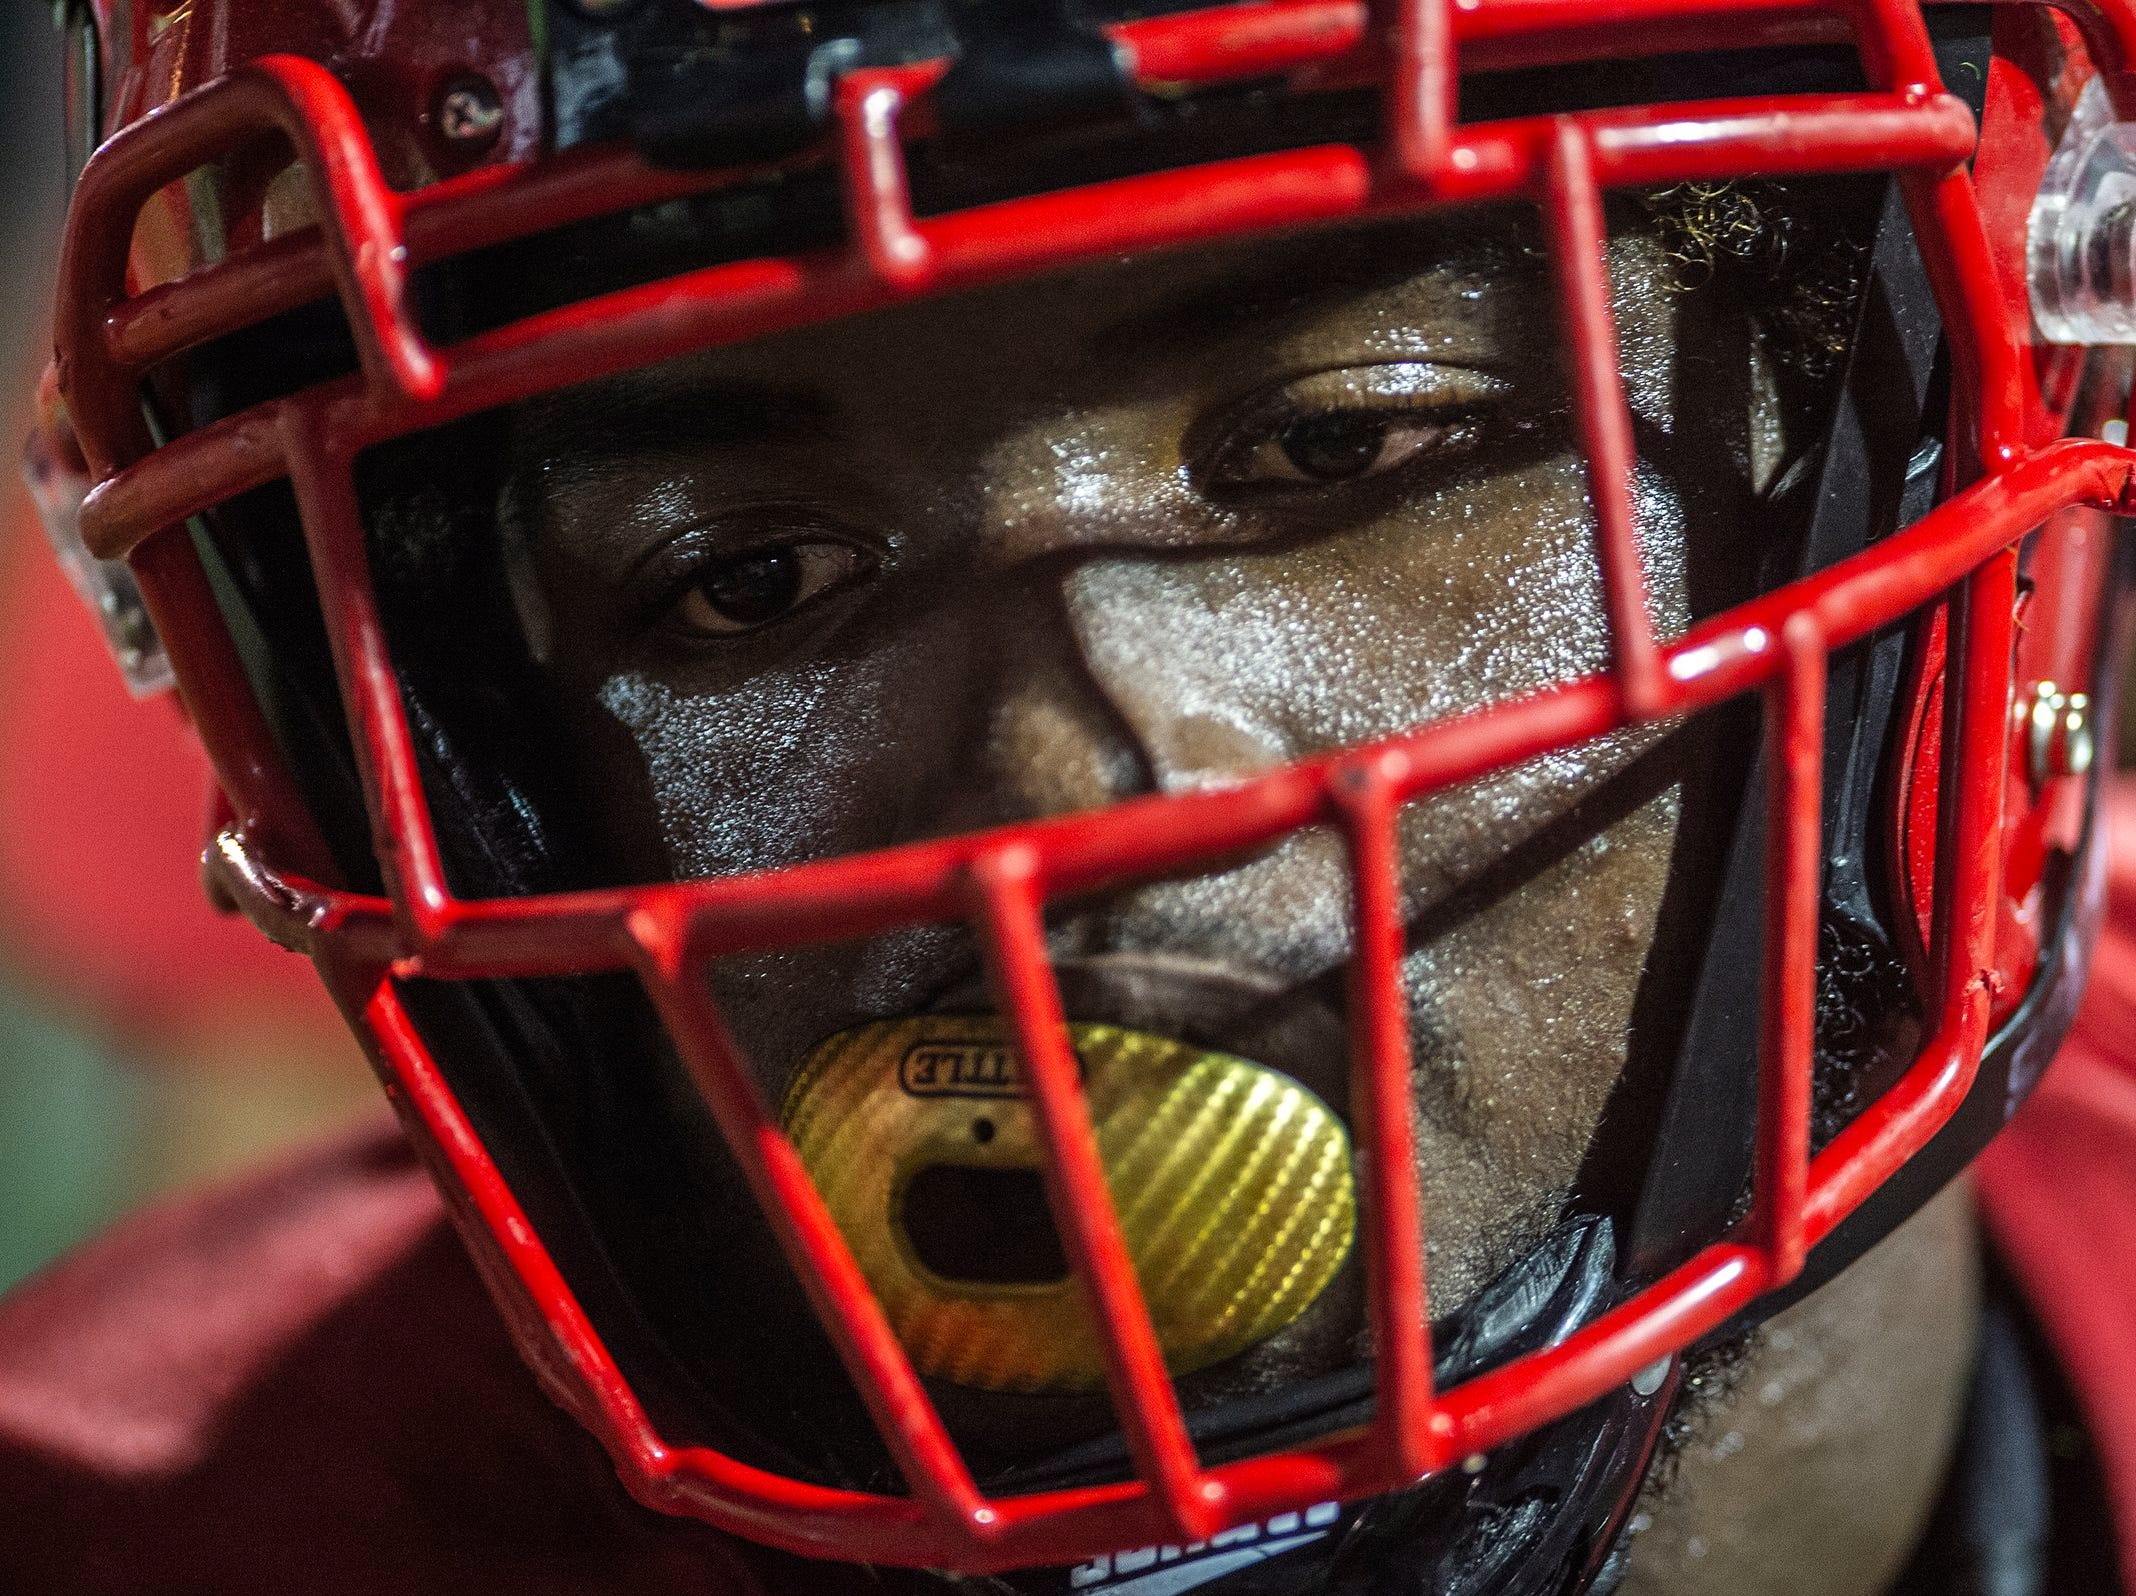 An Immokalee High School player takes a rest during a game against Naples High School in Naples, Fla. on Friday, September 21, 2018.